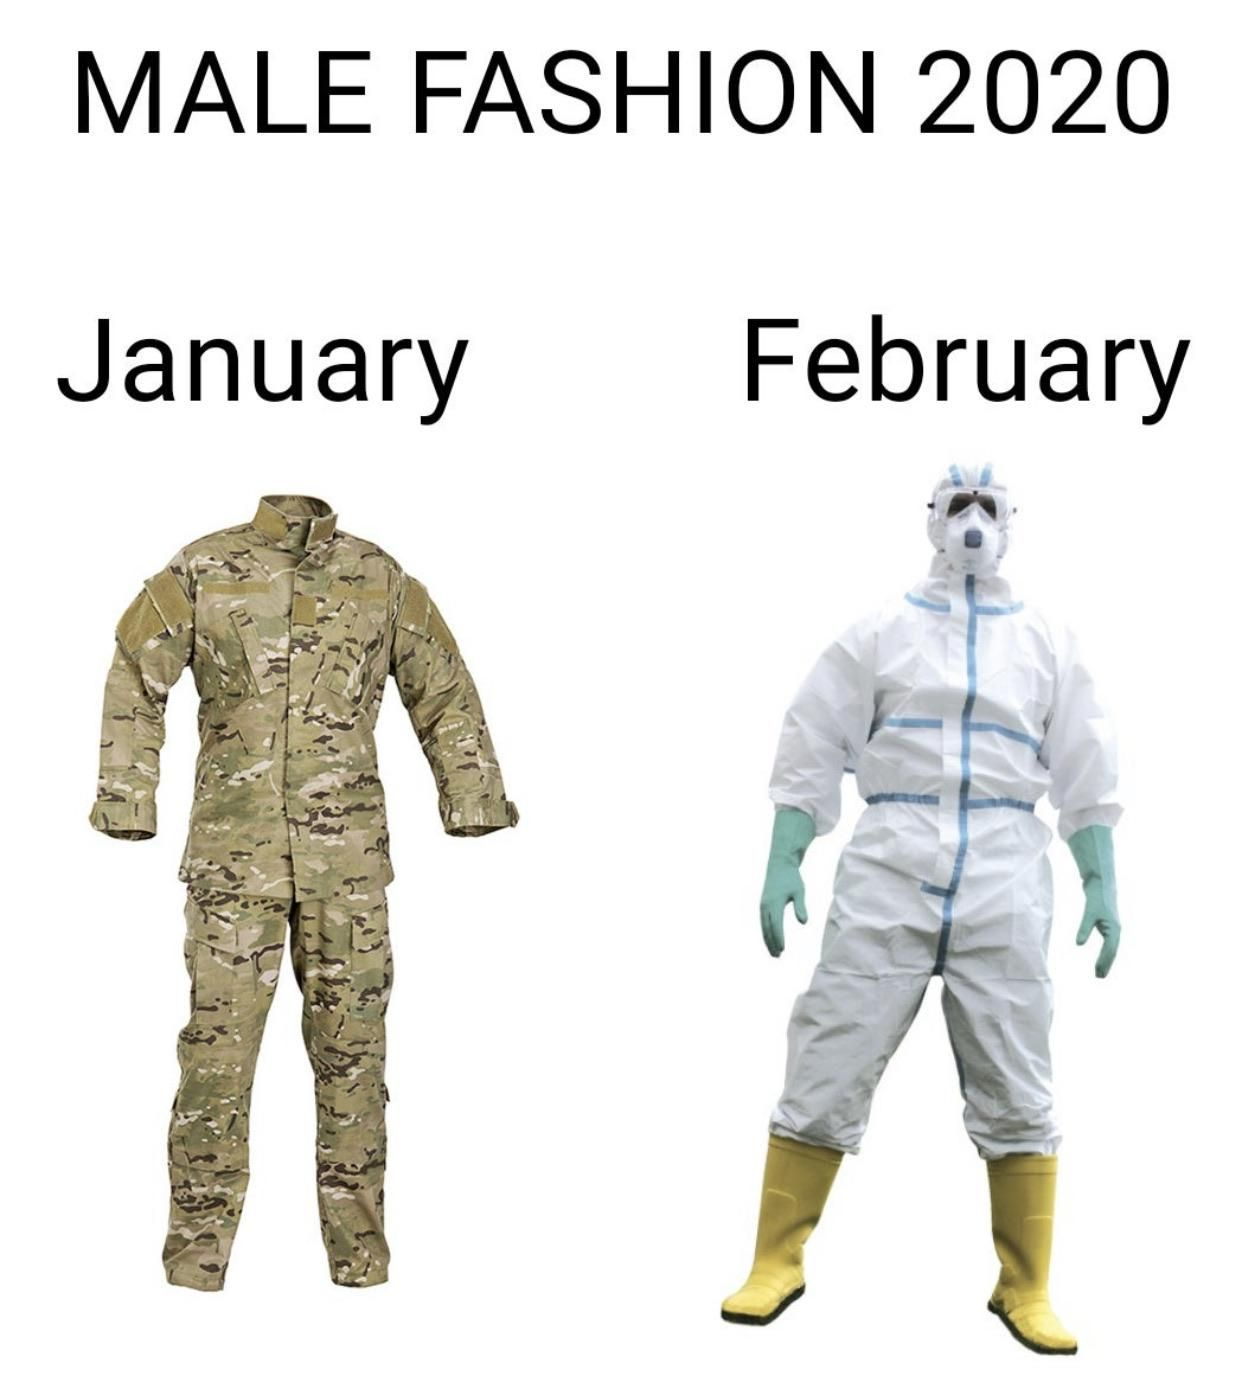 Meme 2020 Looking Promising So Far Daily Fashion And Style Inspo Handsome Male Models And Beautiful Runway Shows Funny Memes Funny Pictures Stupid Memes